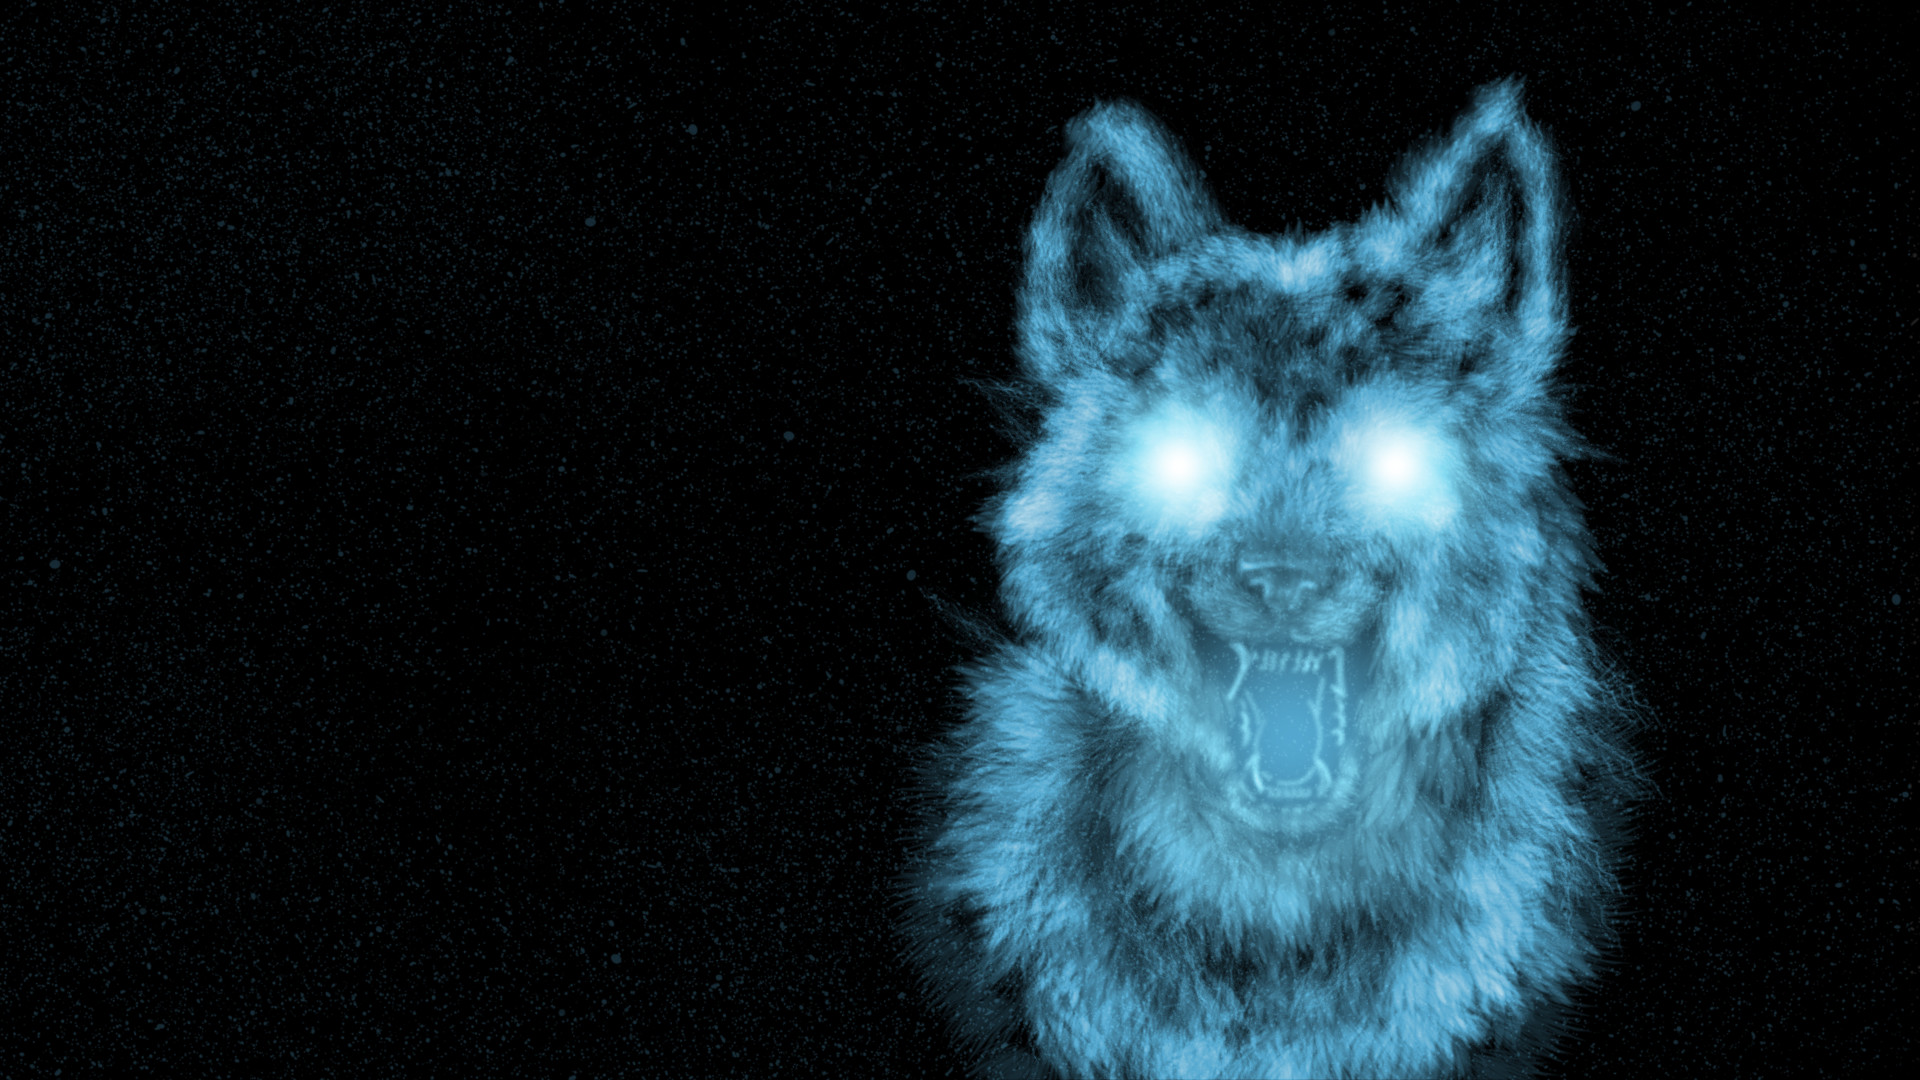 1920x1080 Wolf desktop wallpaper by KinoDro on DeviantArt